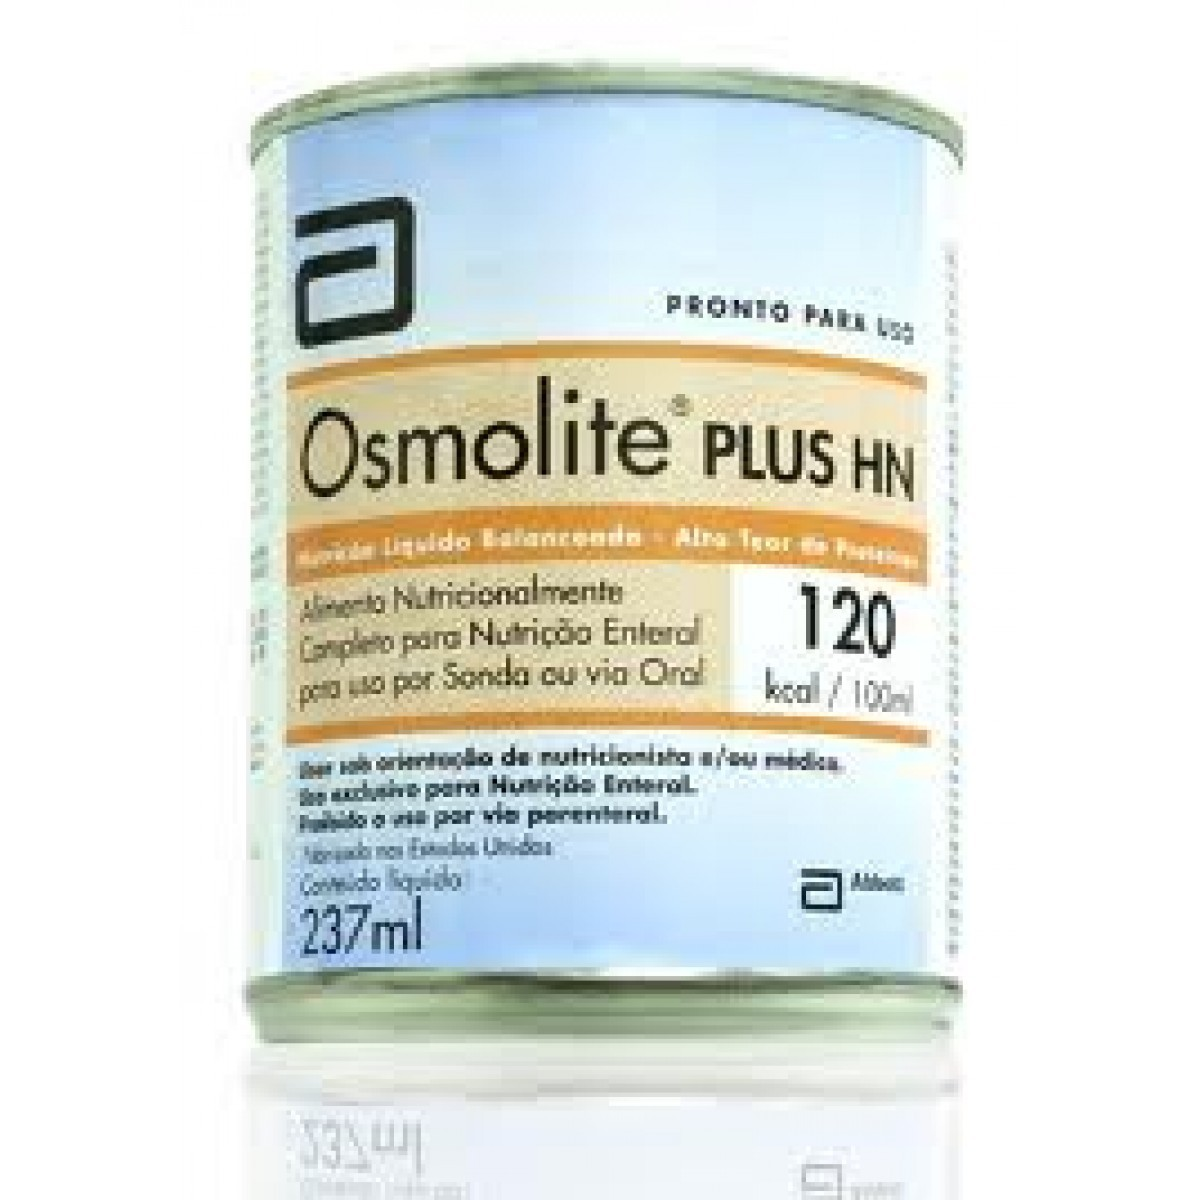 Osmolite Plus HN - 237 mL - (Abbott)